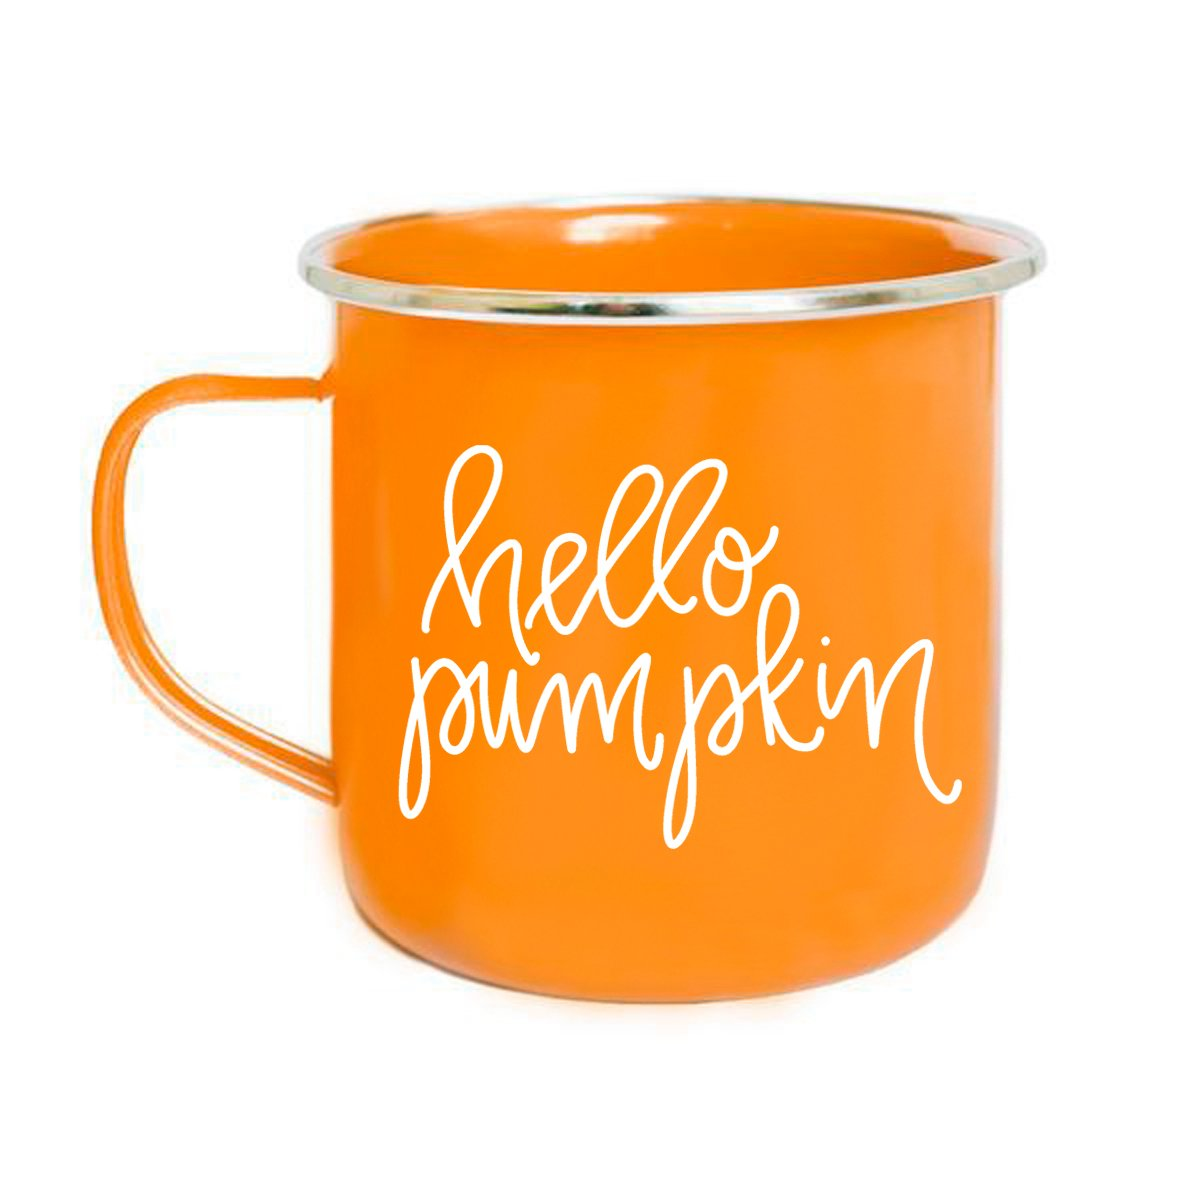 Hello Pumpkin Campfire Mug | Large Orange PSL Tea-Cup Coffee Lover Gift for Her Fall Decorations Orange Spice Halloween Camping Outdoor Accessories PSL